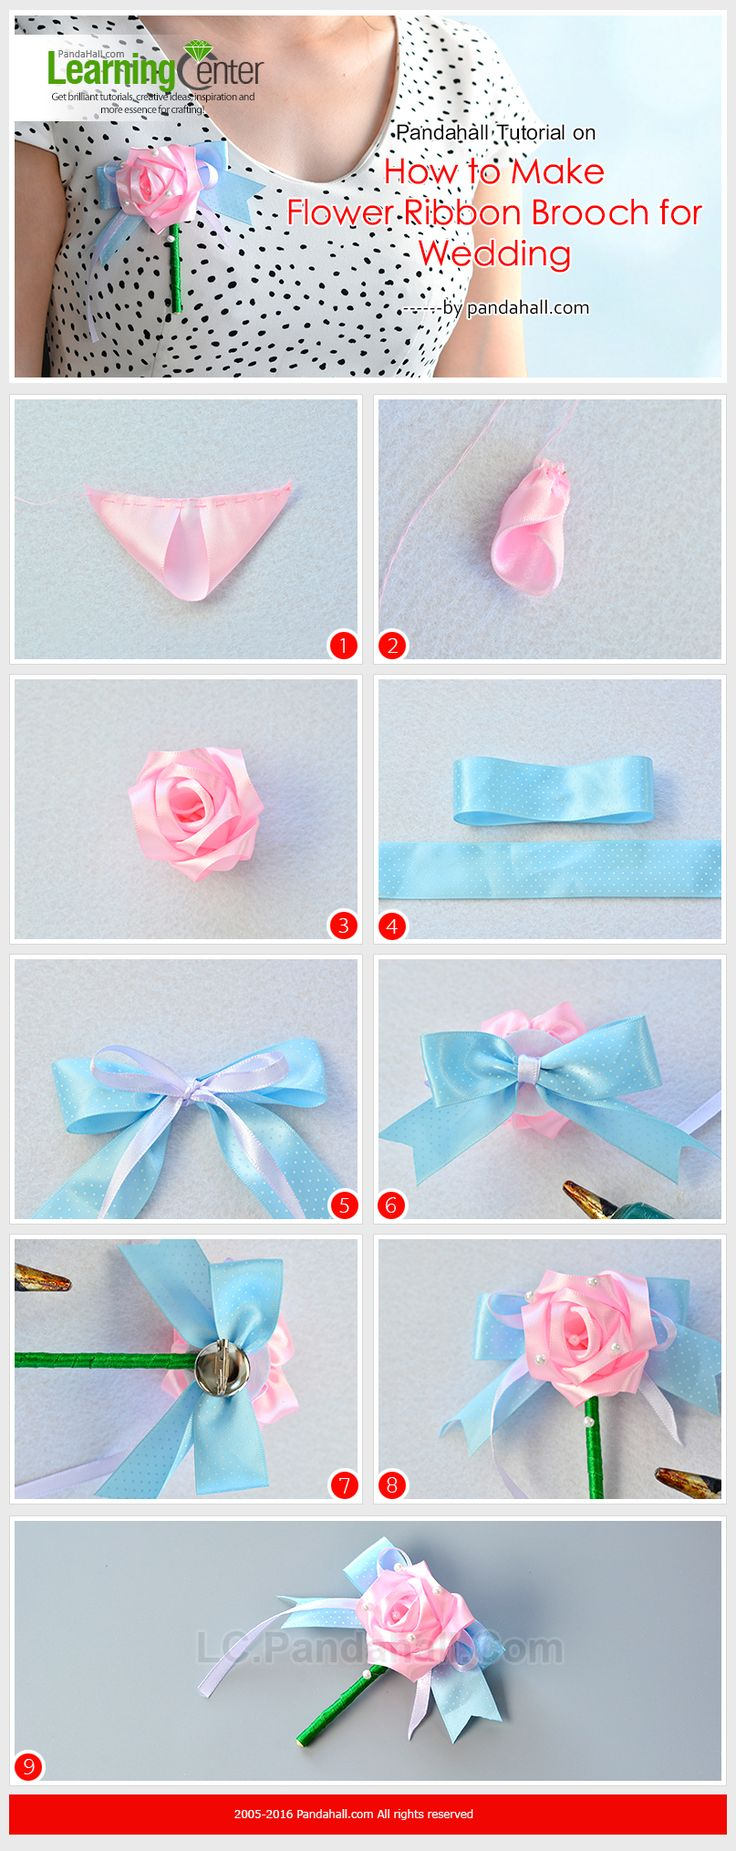 Pandahall Tutorial on How to Make Flower Ribbon Brooch for Wedding from LC.Pandahall.com